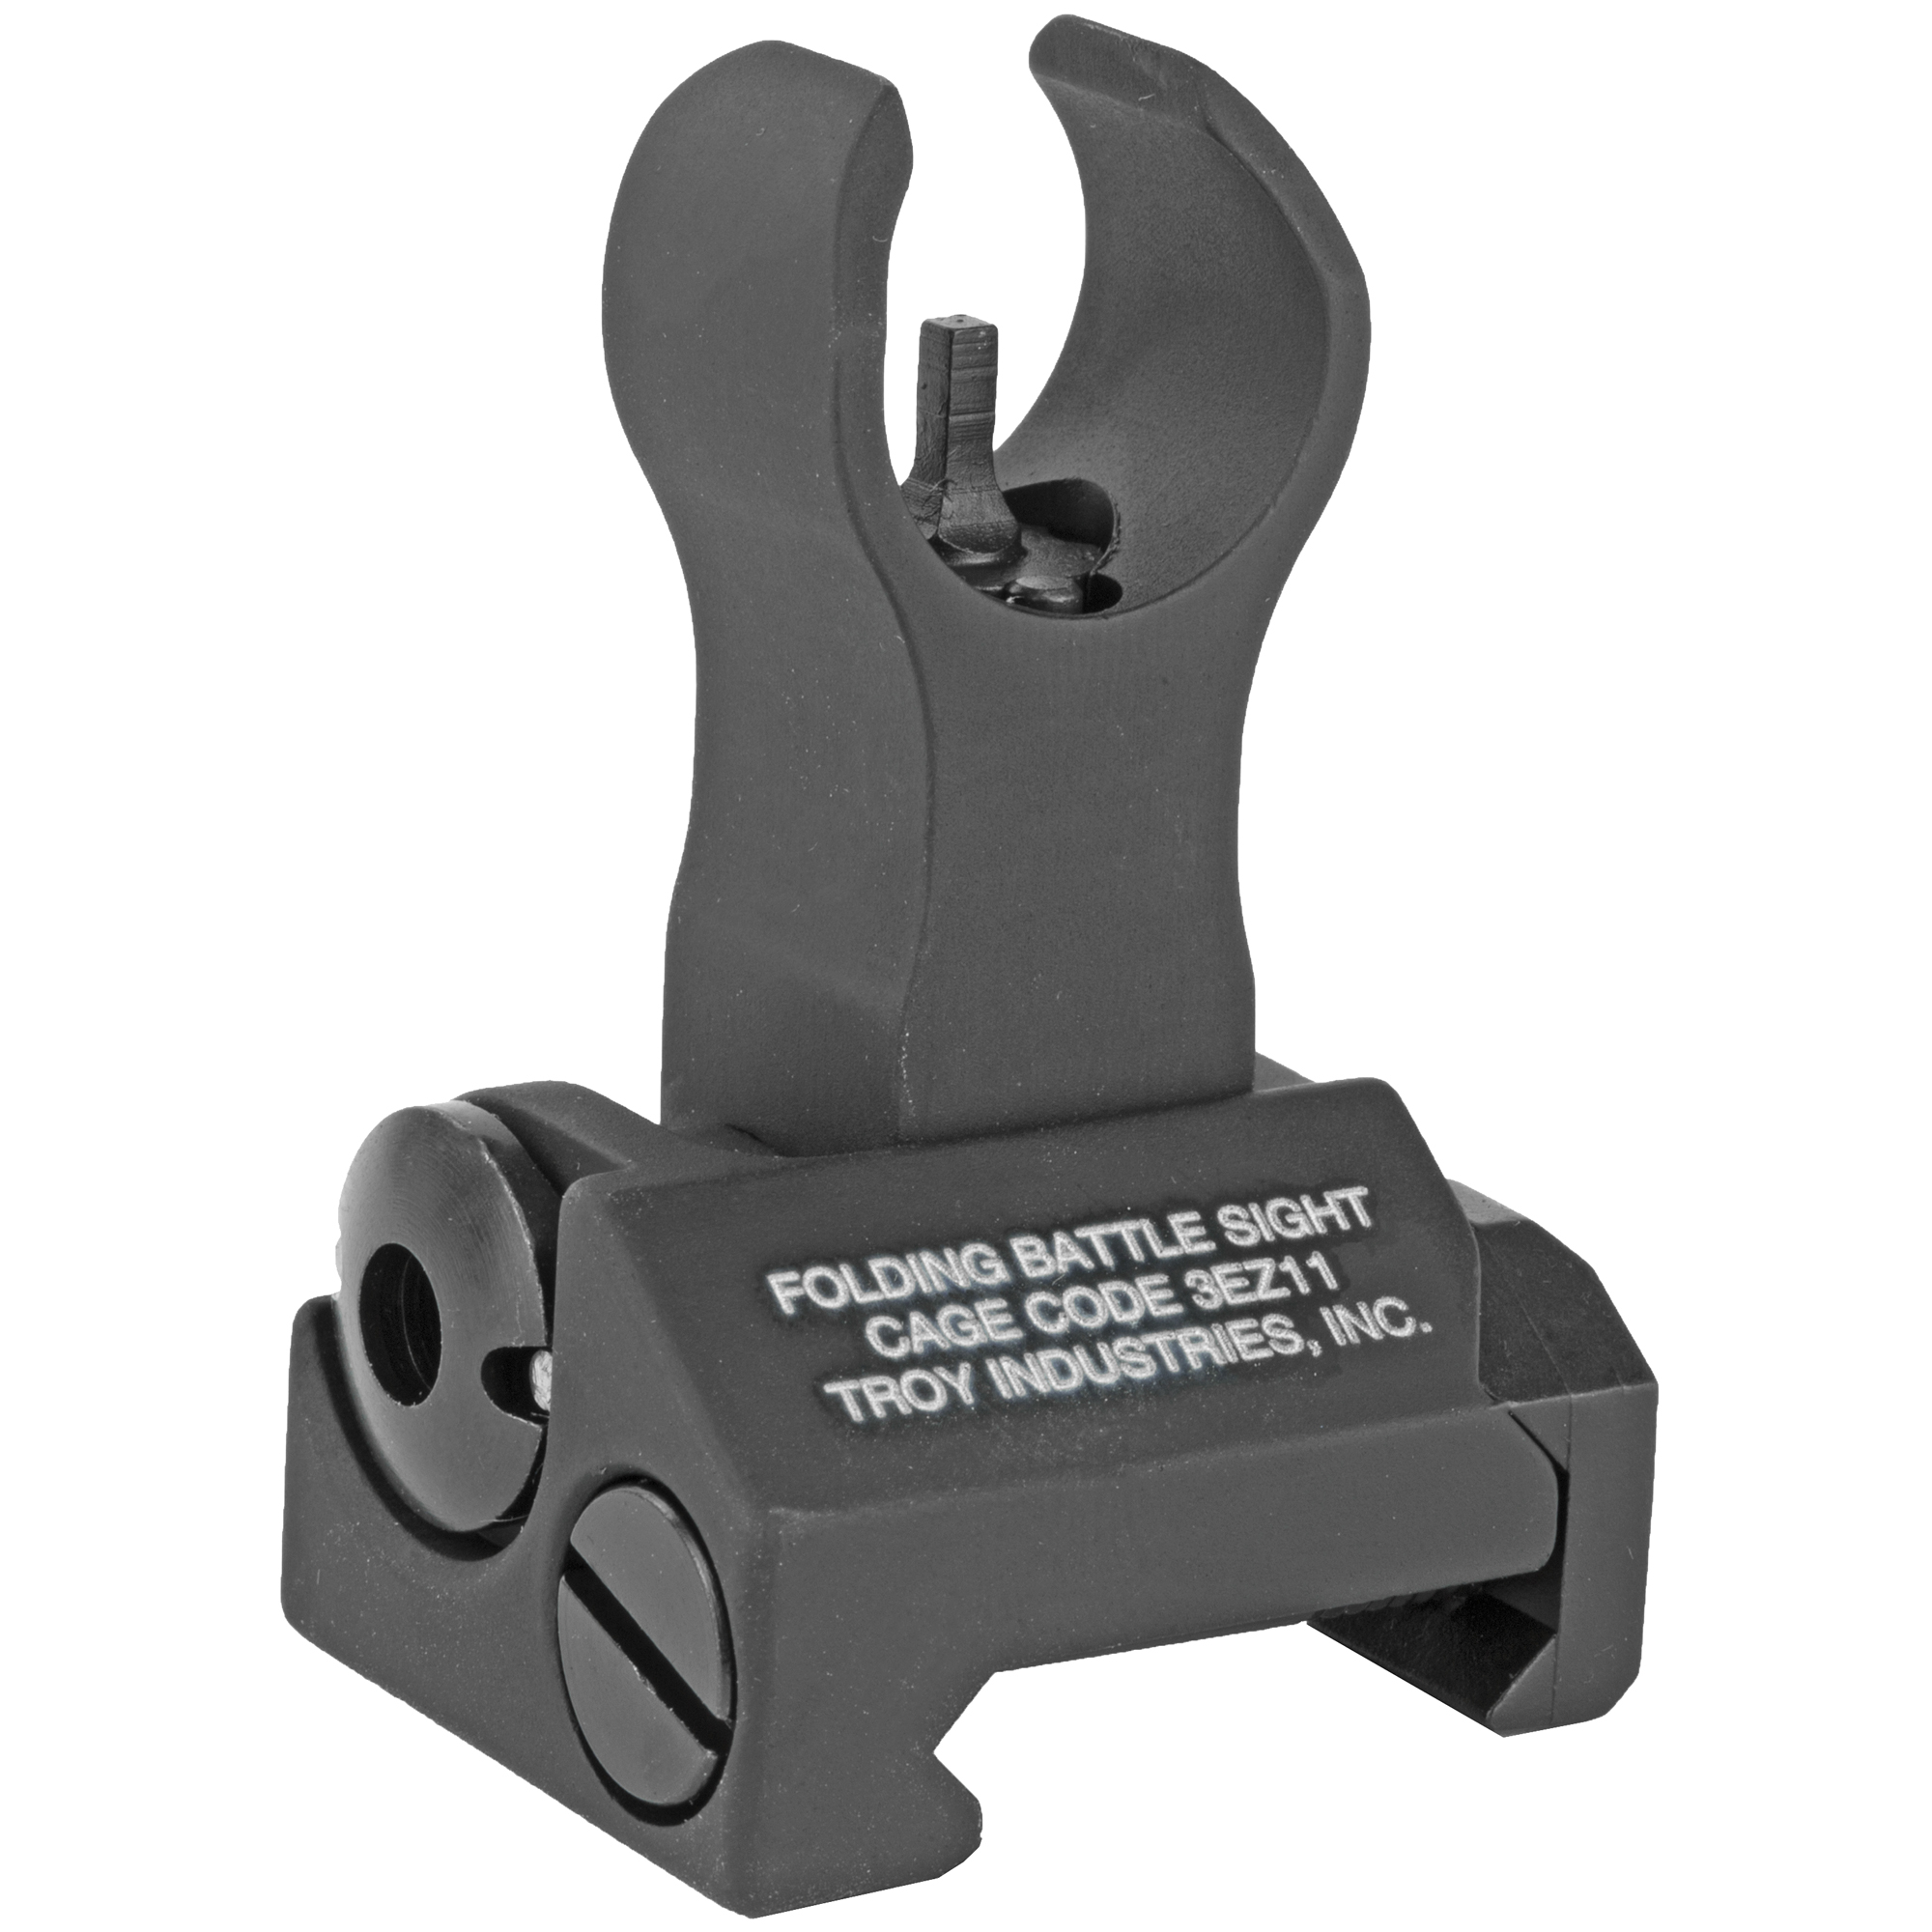 """Durability and dead-on accuracy make Troy BattleSights(TM) the hands-down first choice of Special Ops and Tactical Users Worldwide. Troy's HK Front Folding BattleSight is easy to install and deploy"""" with no levers or springs to fumble with. No tools required for adjustment."""